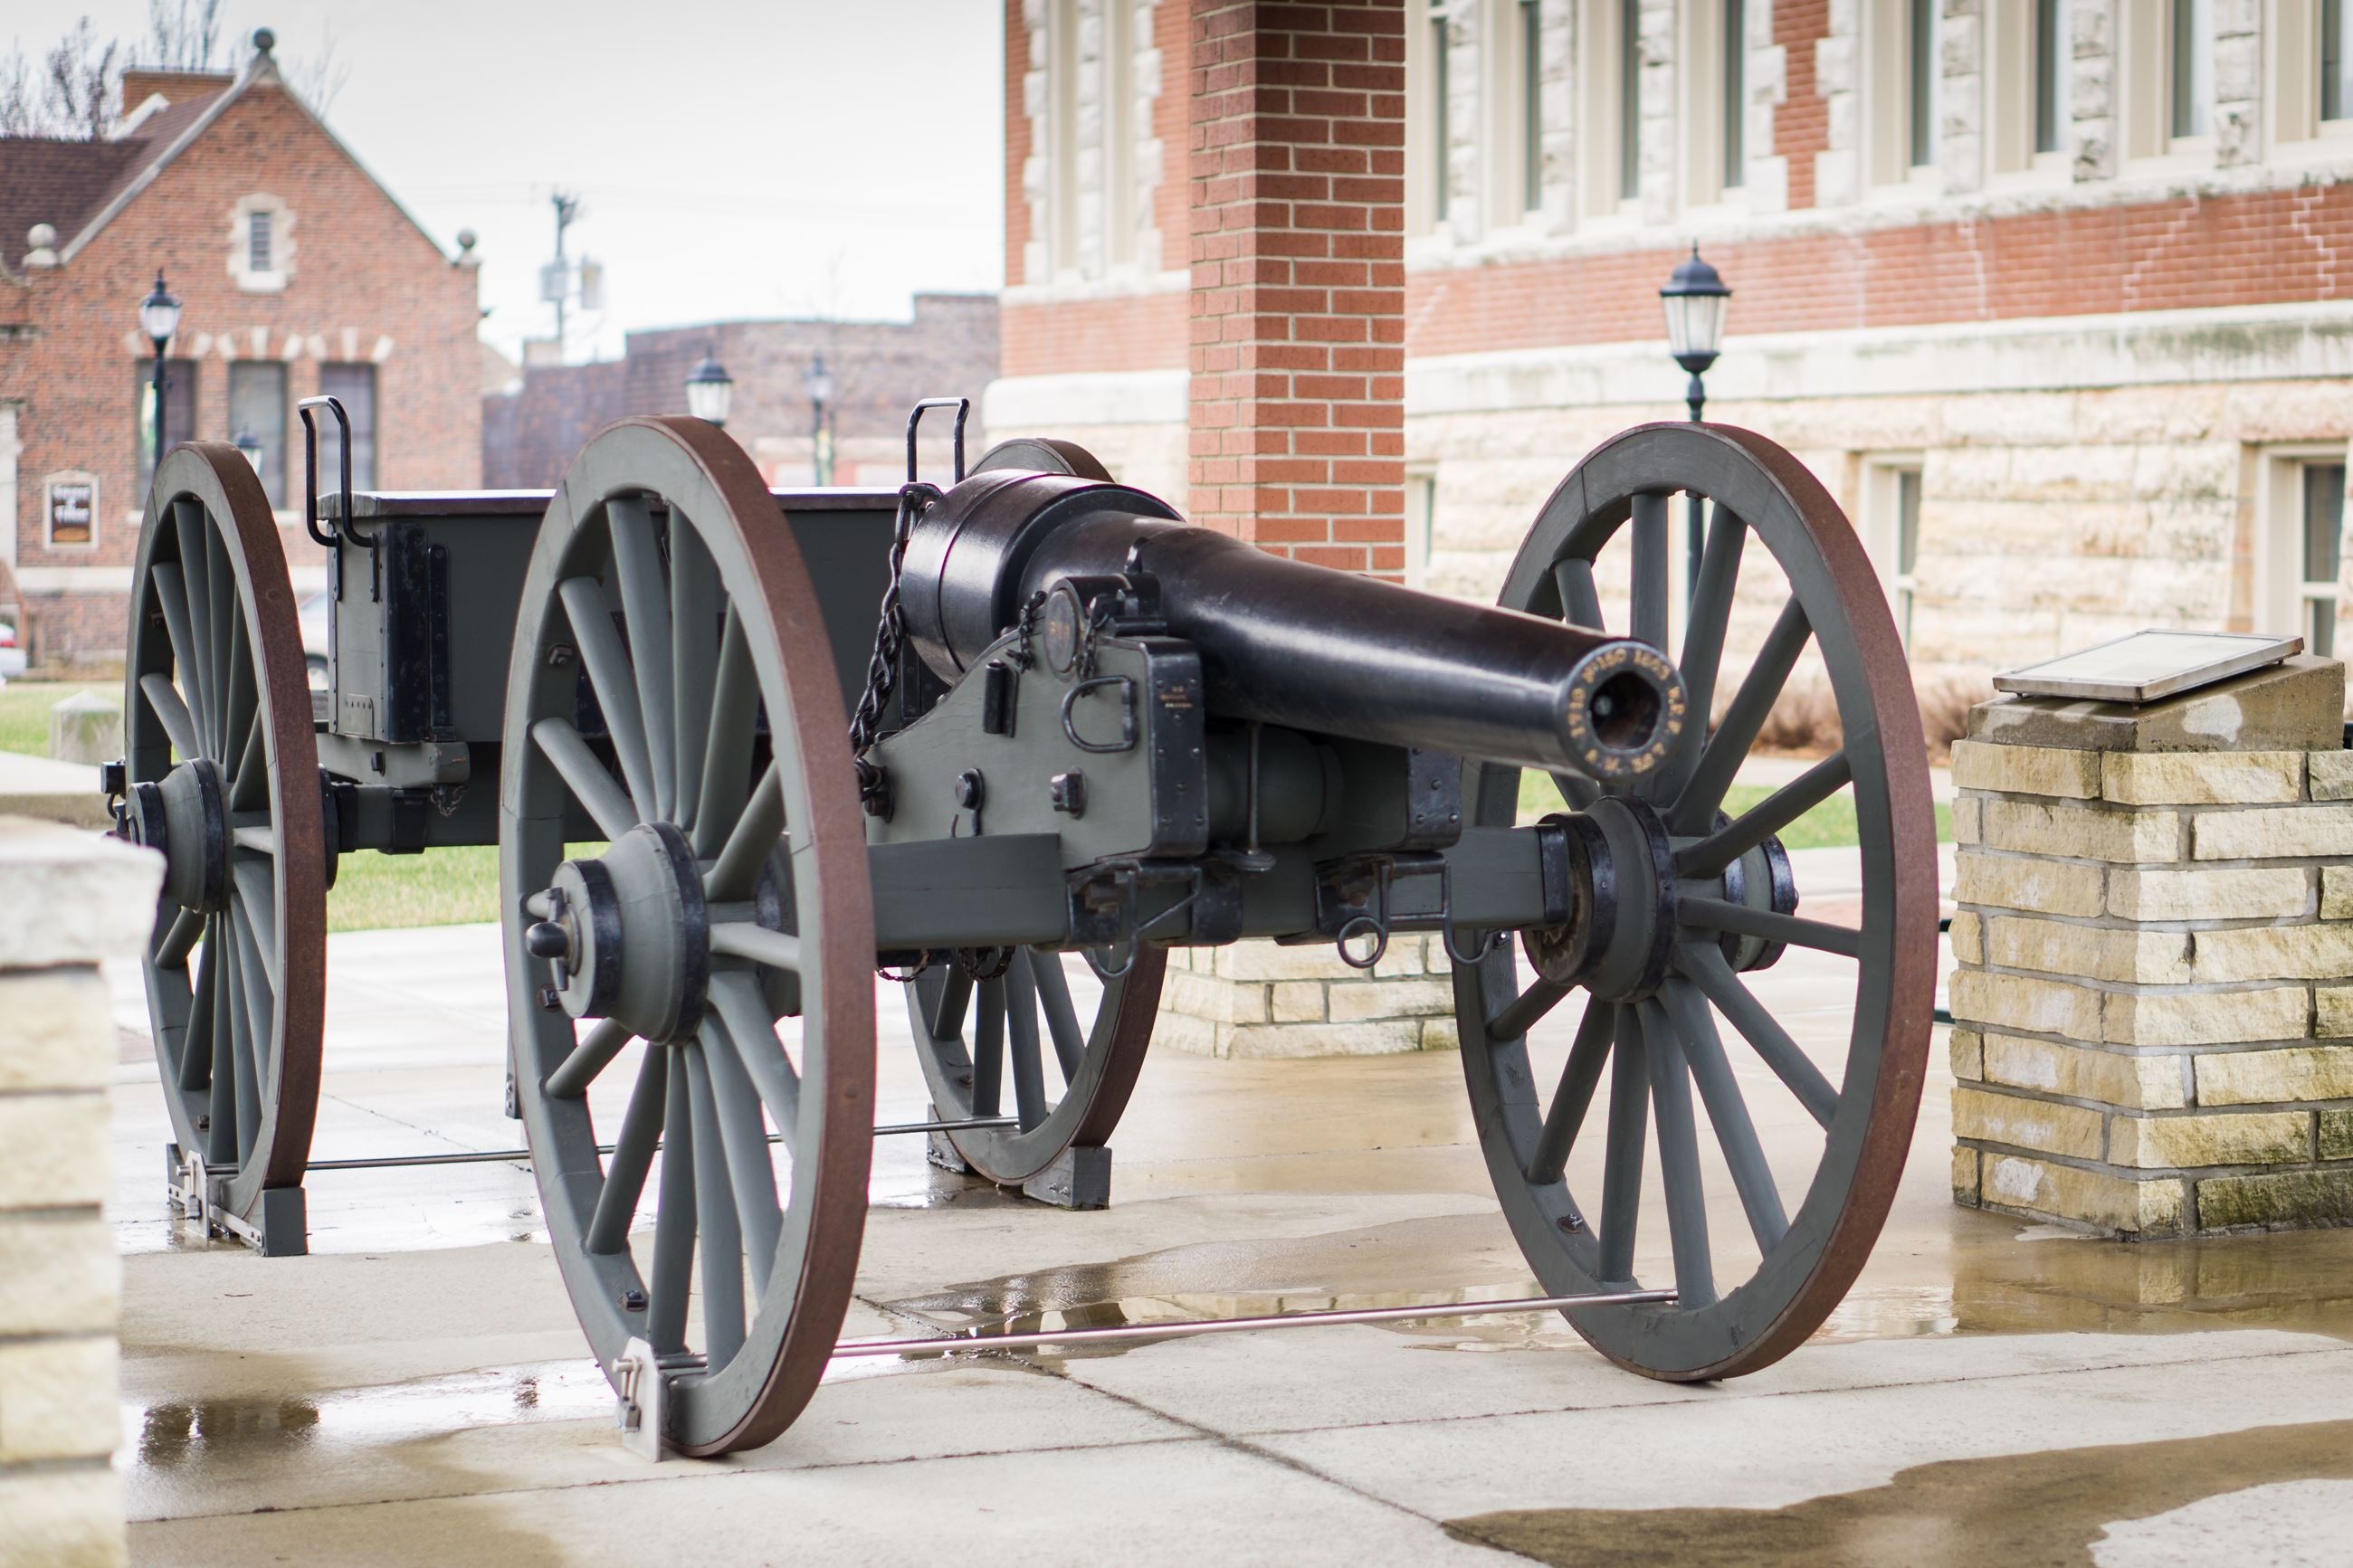 Cannon on Courthouse Grounds